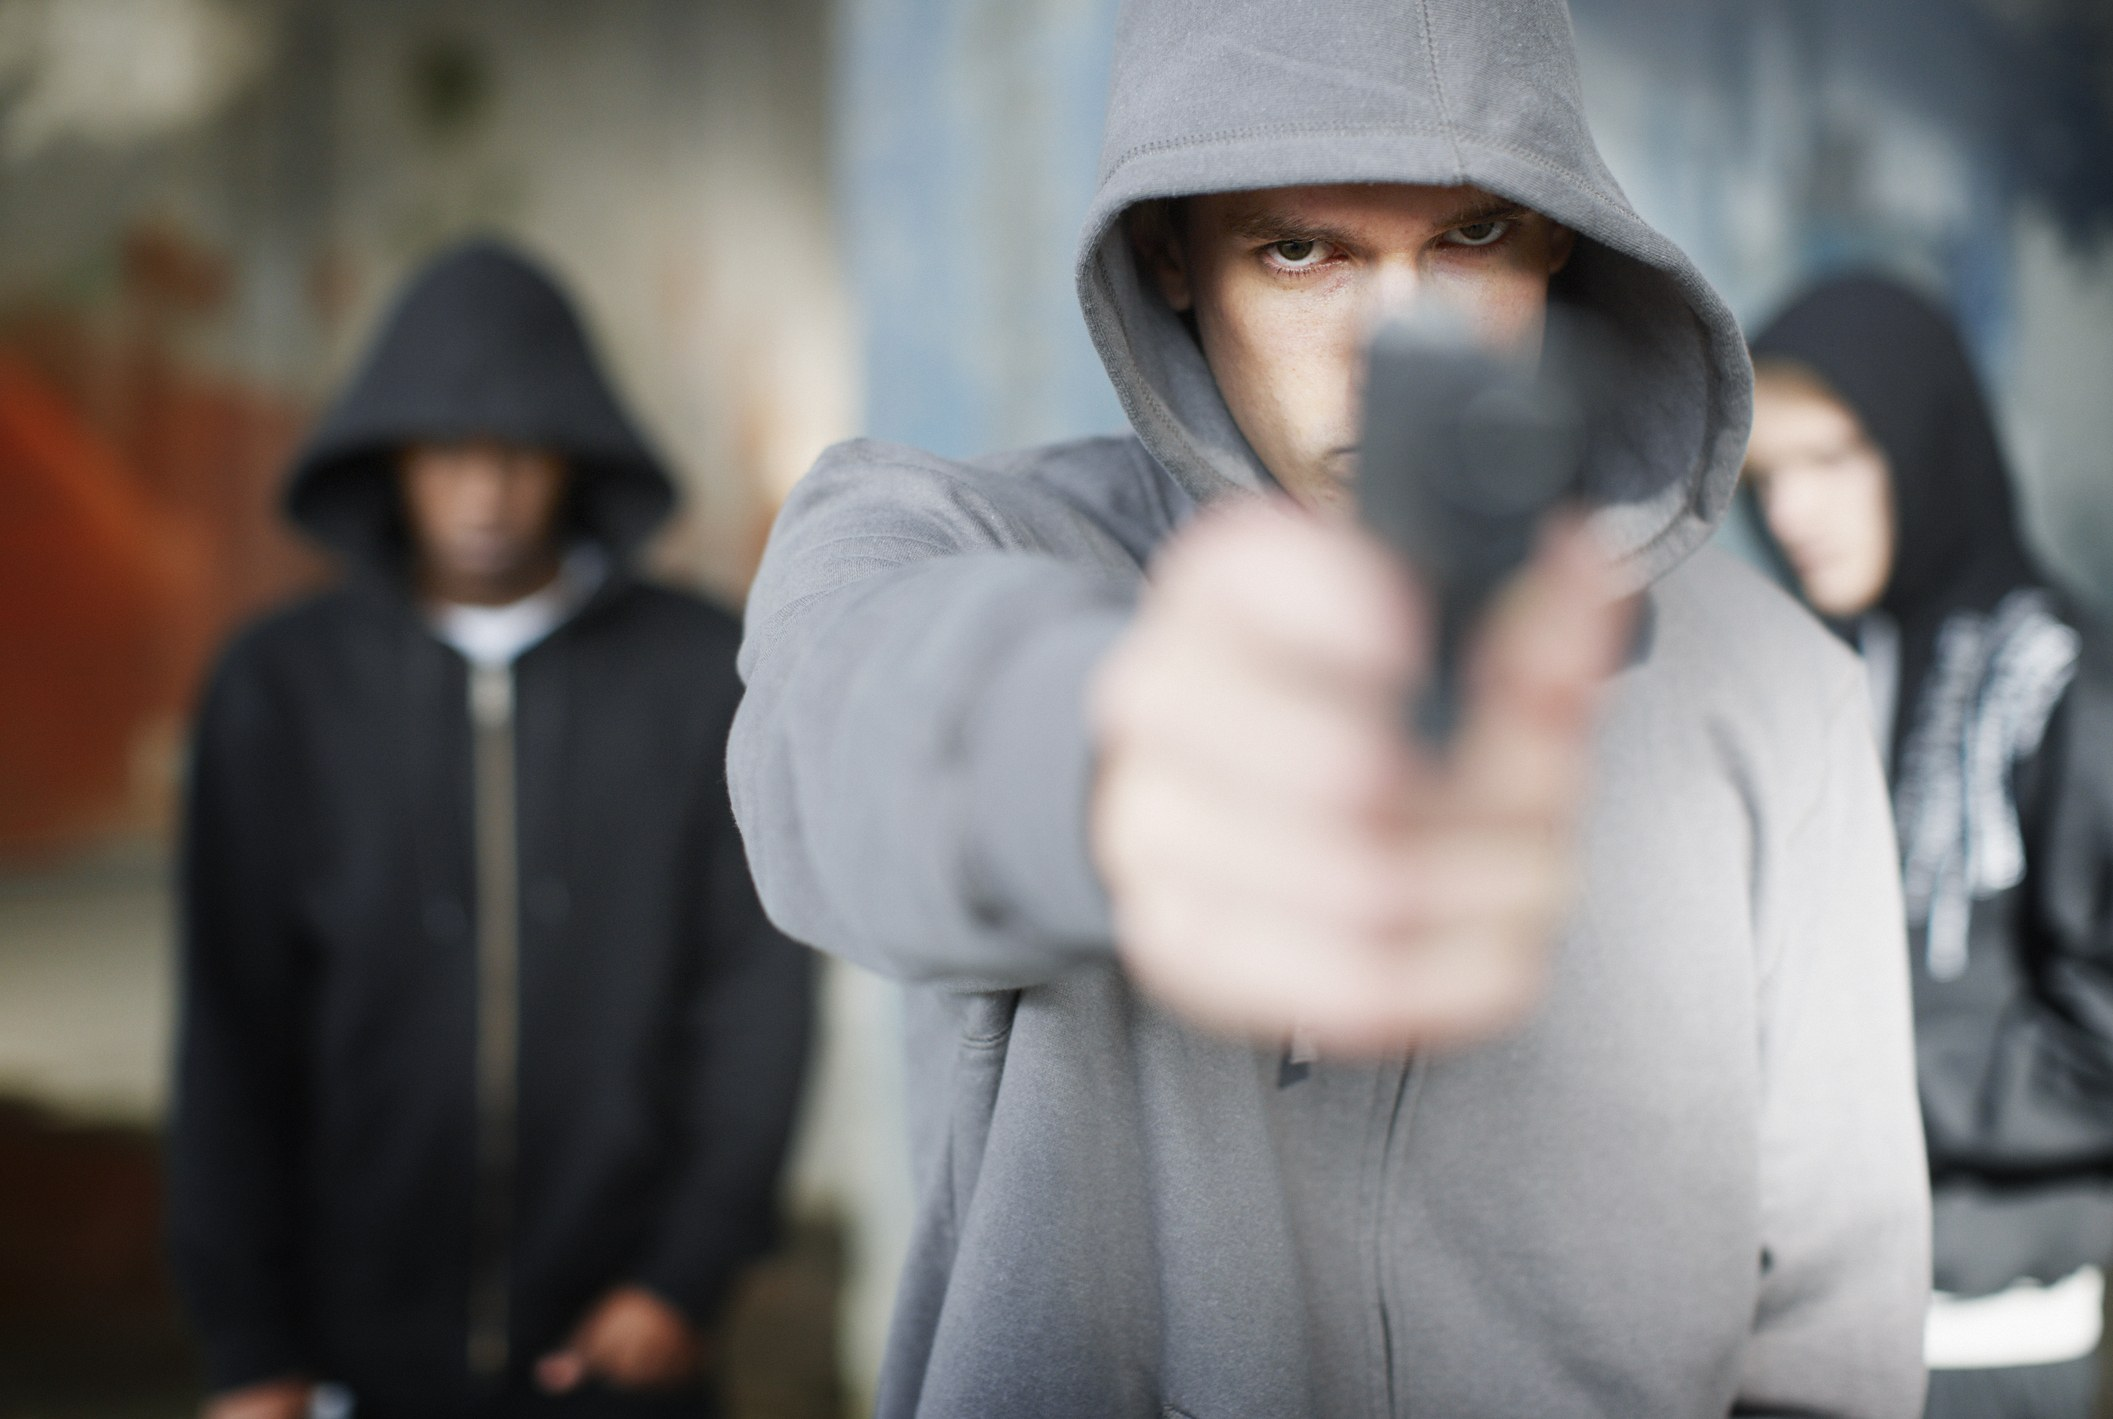 The 1 City Where Gun Violence Could Kill You (and 9 Other Cities You Might Want to Avoid)